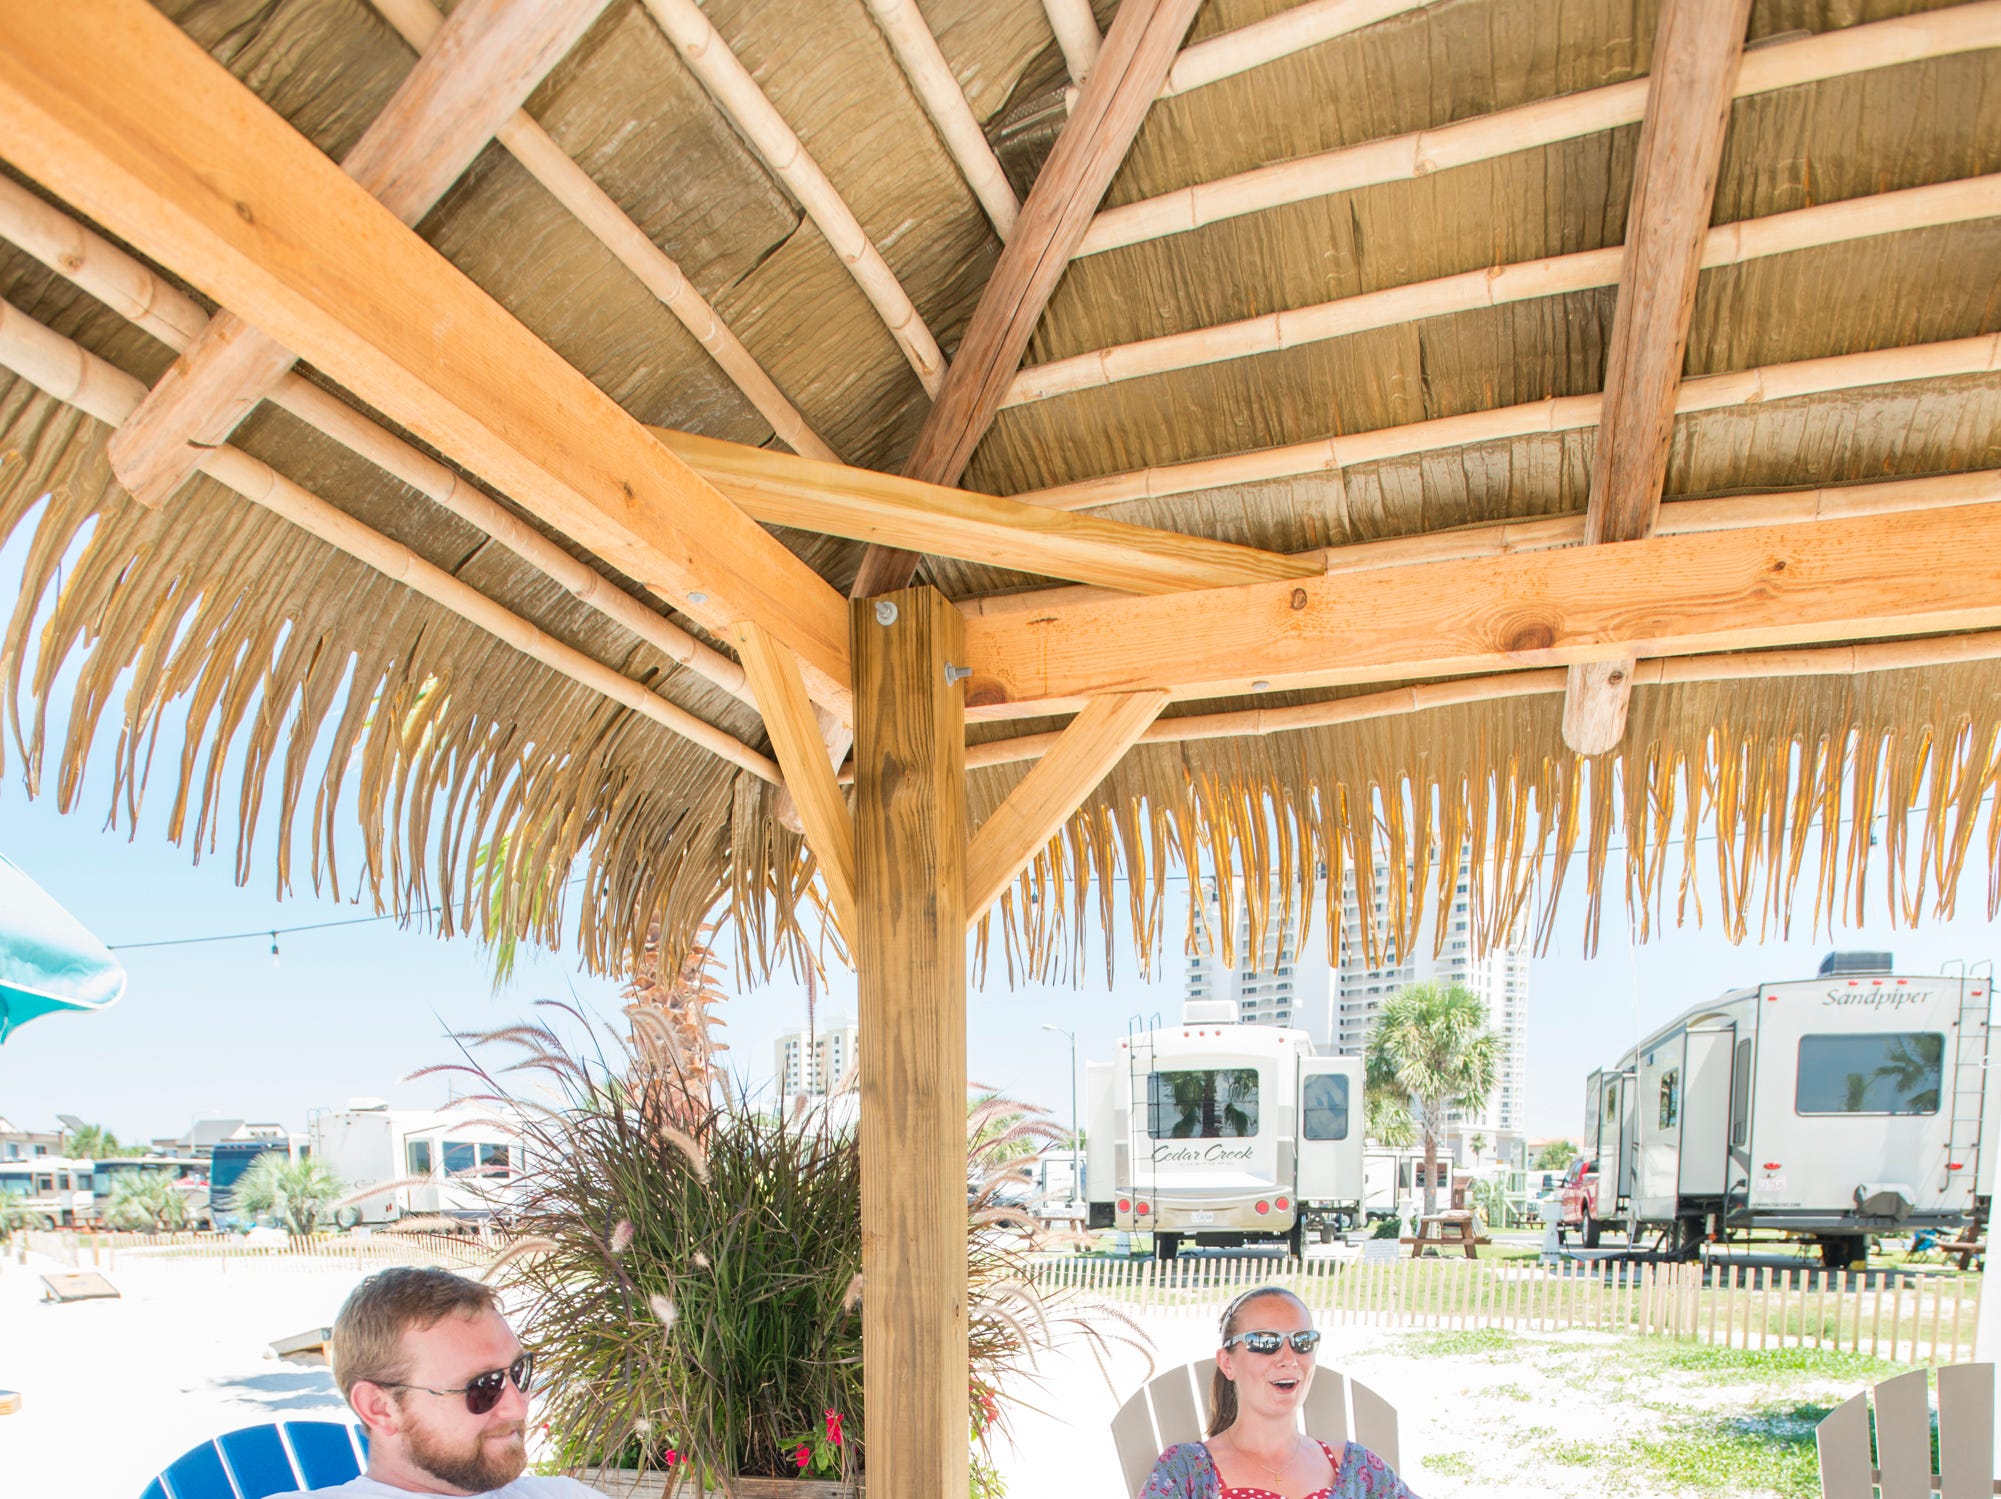 Pensacola Beach RV Resort residents Tyler and Katie Moos relax near the resort's Tiki Bar in Pensacola on Tuesday, August 7, 2018.